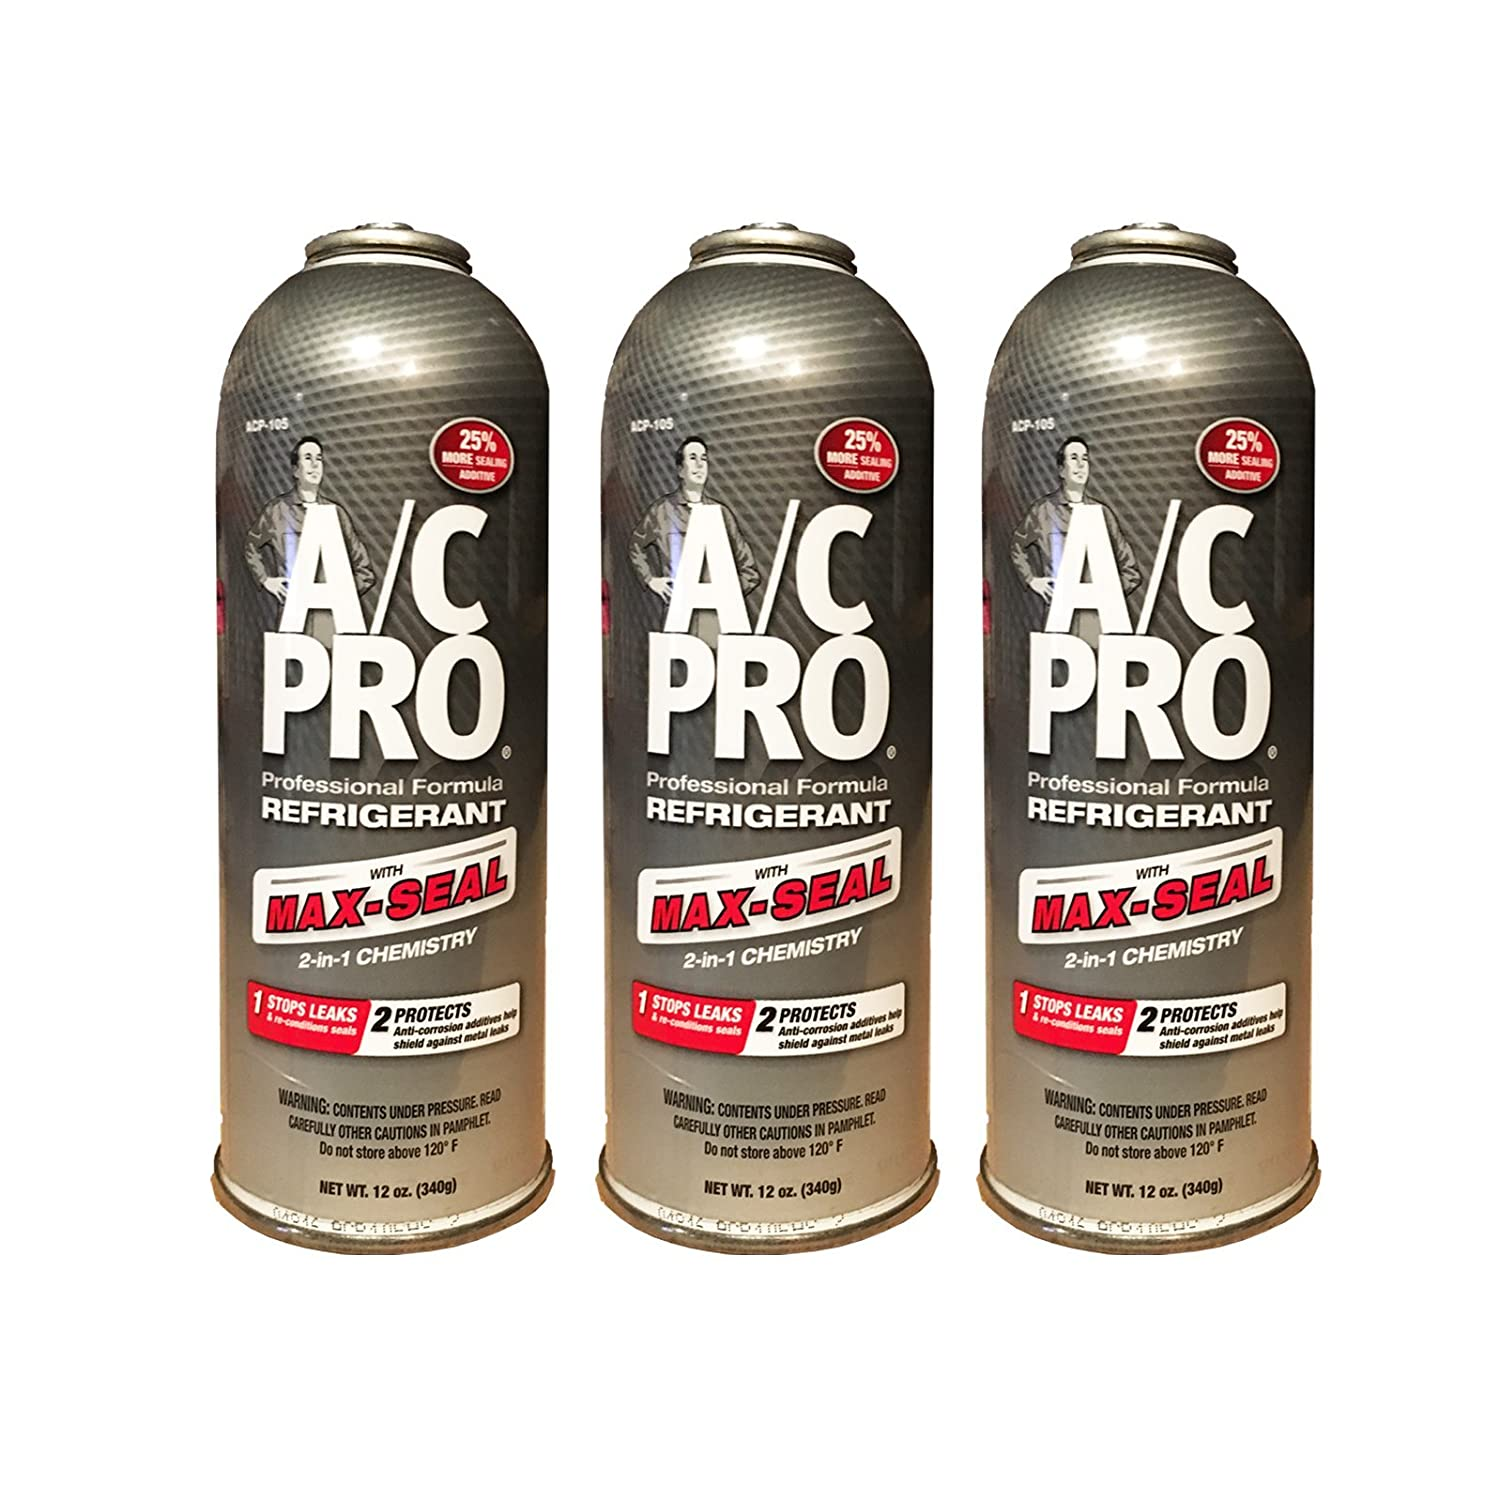 A/C PRO (ACP-105) PRO Professional Formula R-134a Ultra Synthetic Air Conditioning Refrigerant with Advanced Leak Sealer - 12 oz. - 3 cans Interdynamics A/C Pro